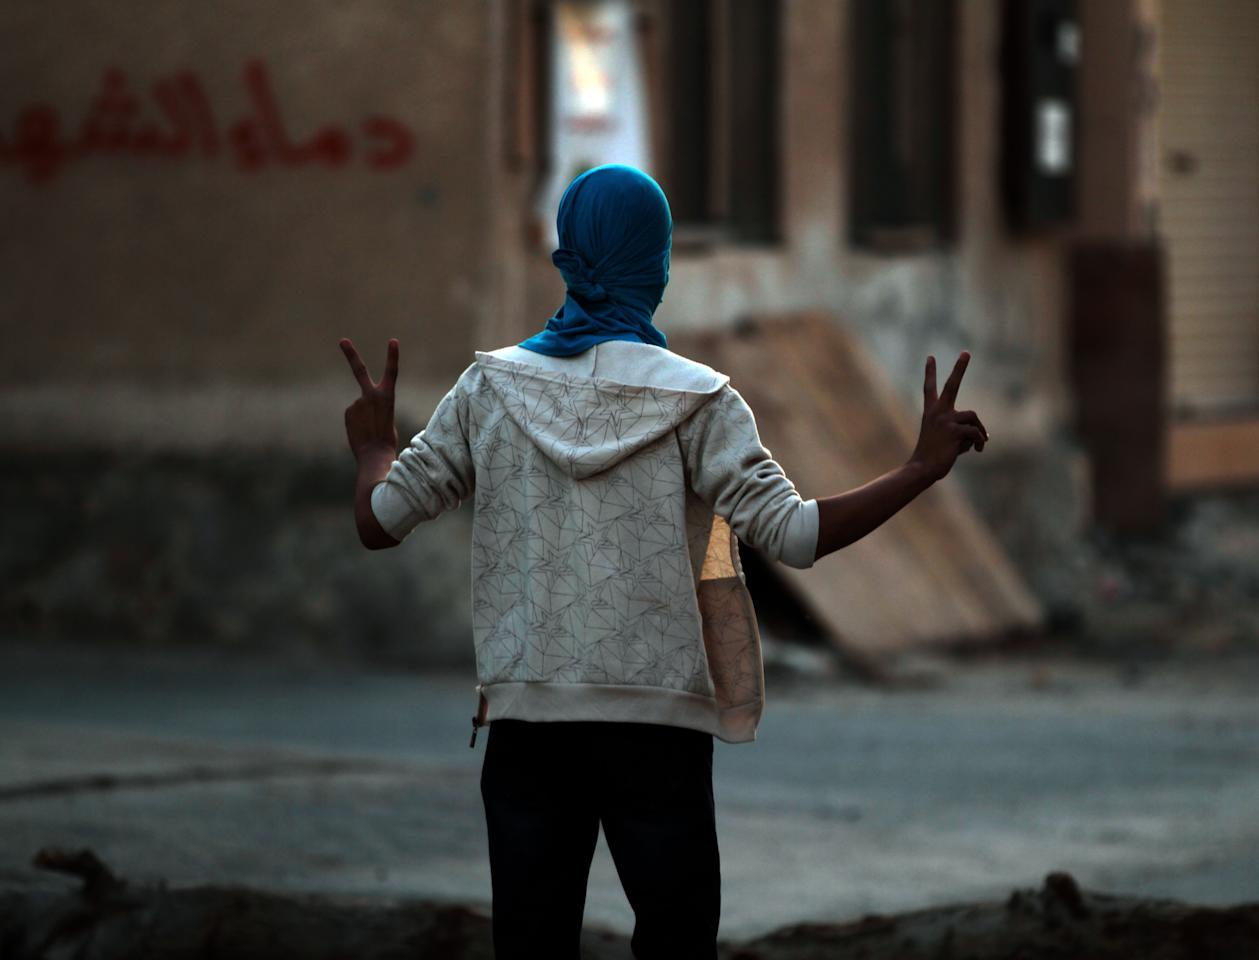 A Bahraini anti-government protester flashes the victory sign toward riot police during clashes in Abu Saiba, Bahrain, Monday, Dec. 3, 2012. (AP Photo/Hasan Jamali)